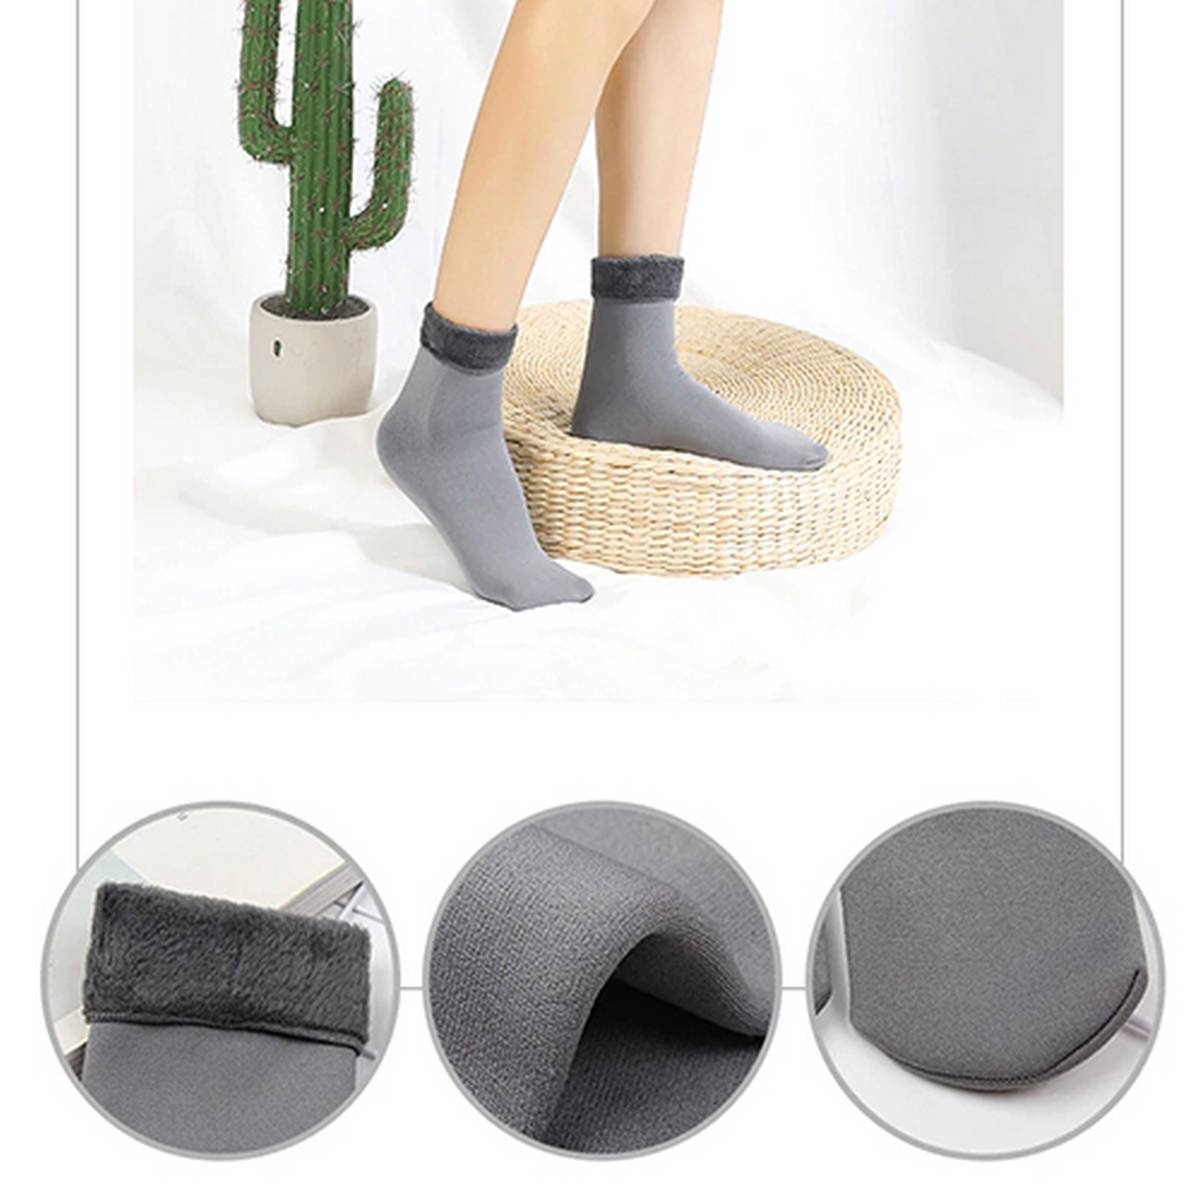 Winter Warm Soft Breathable Socks (Smooth Moisturizing SocksFoot protection in winter)